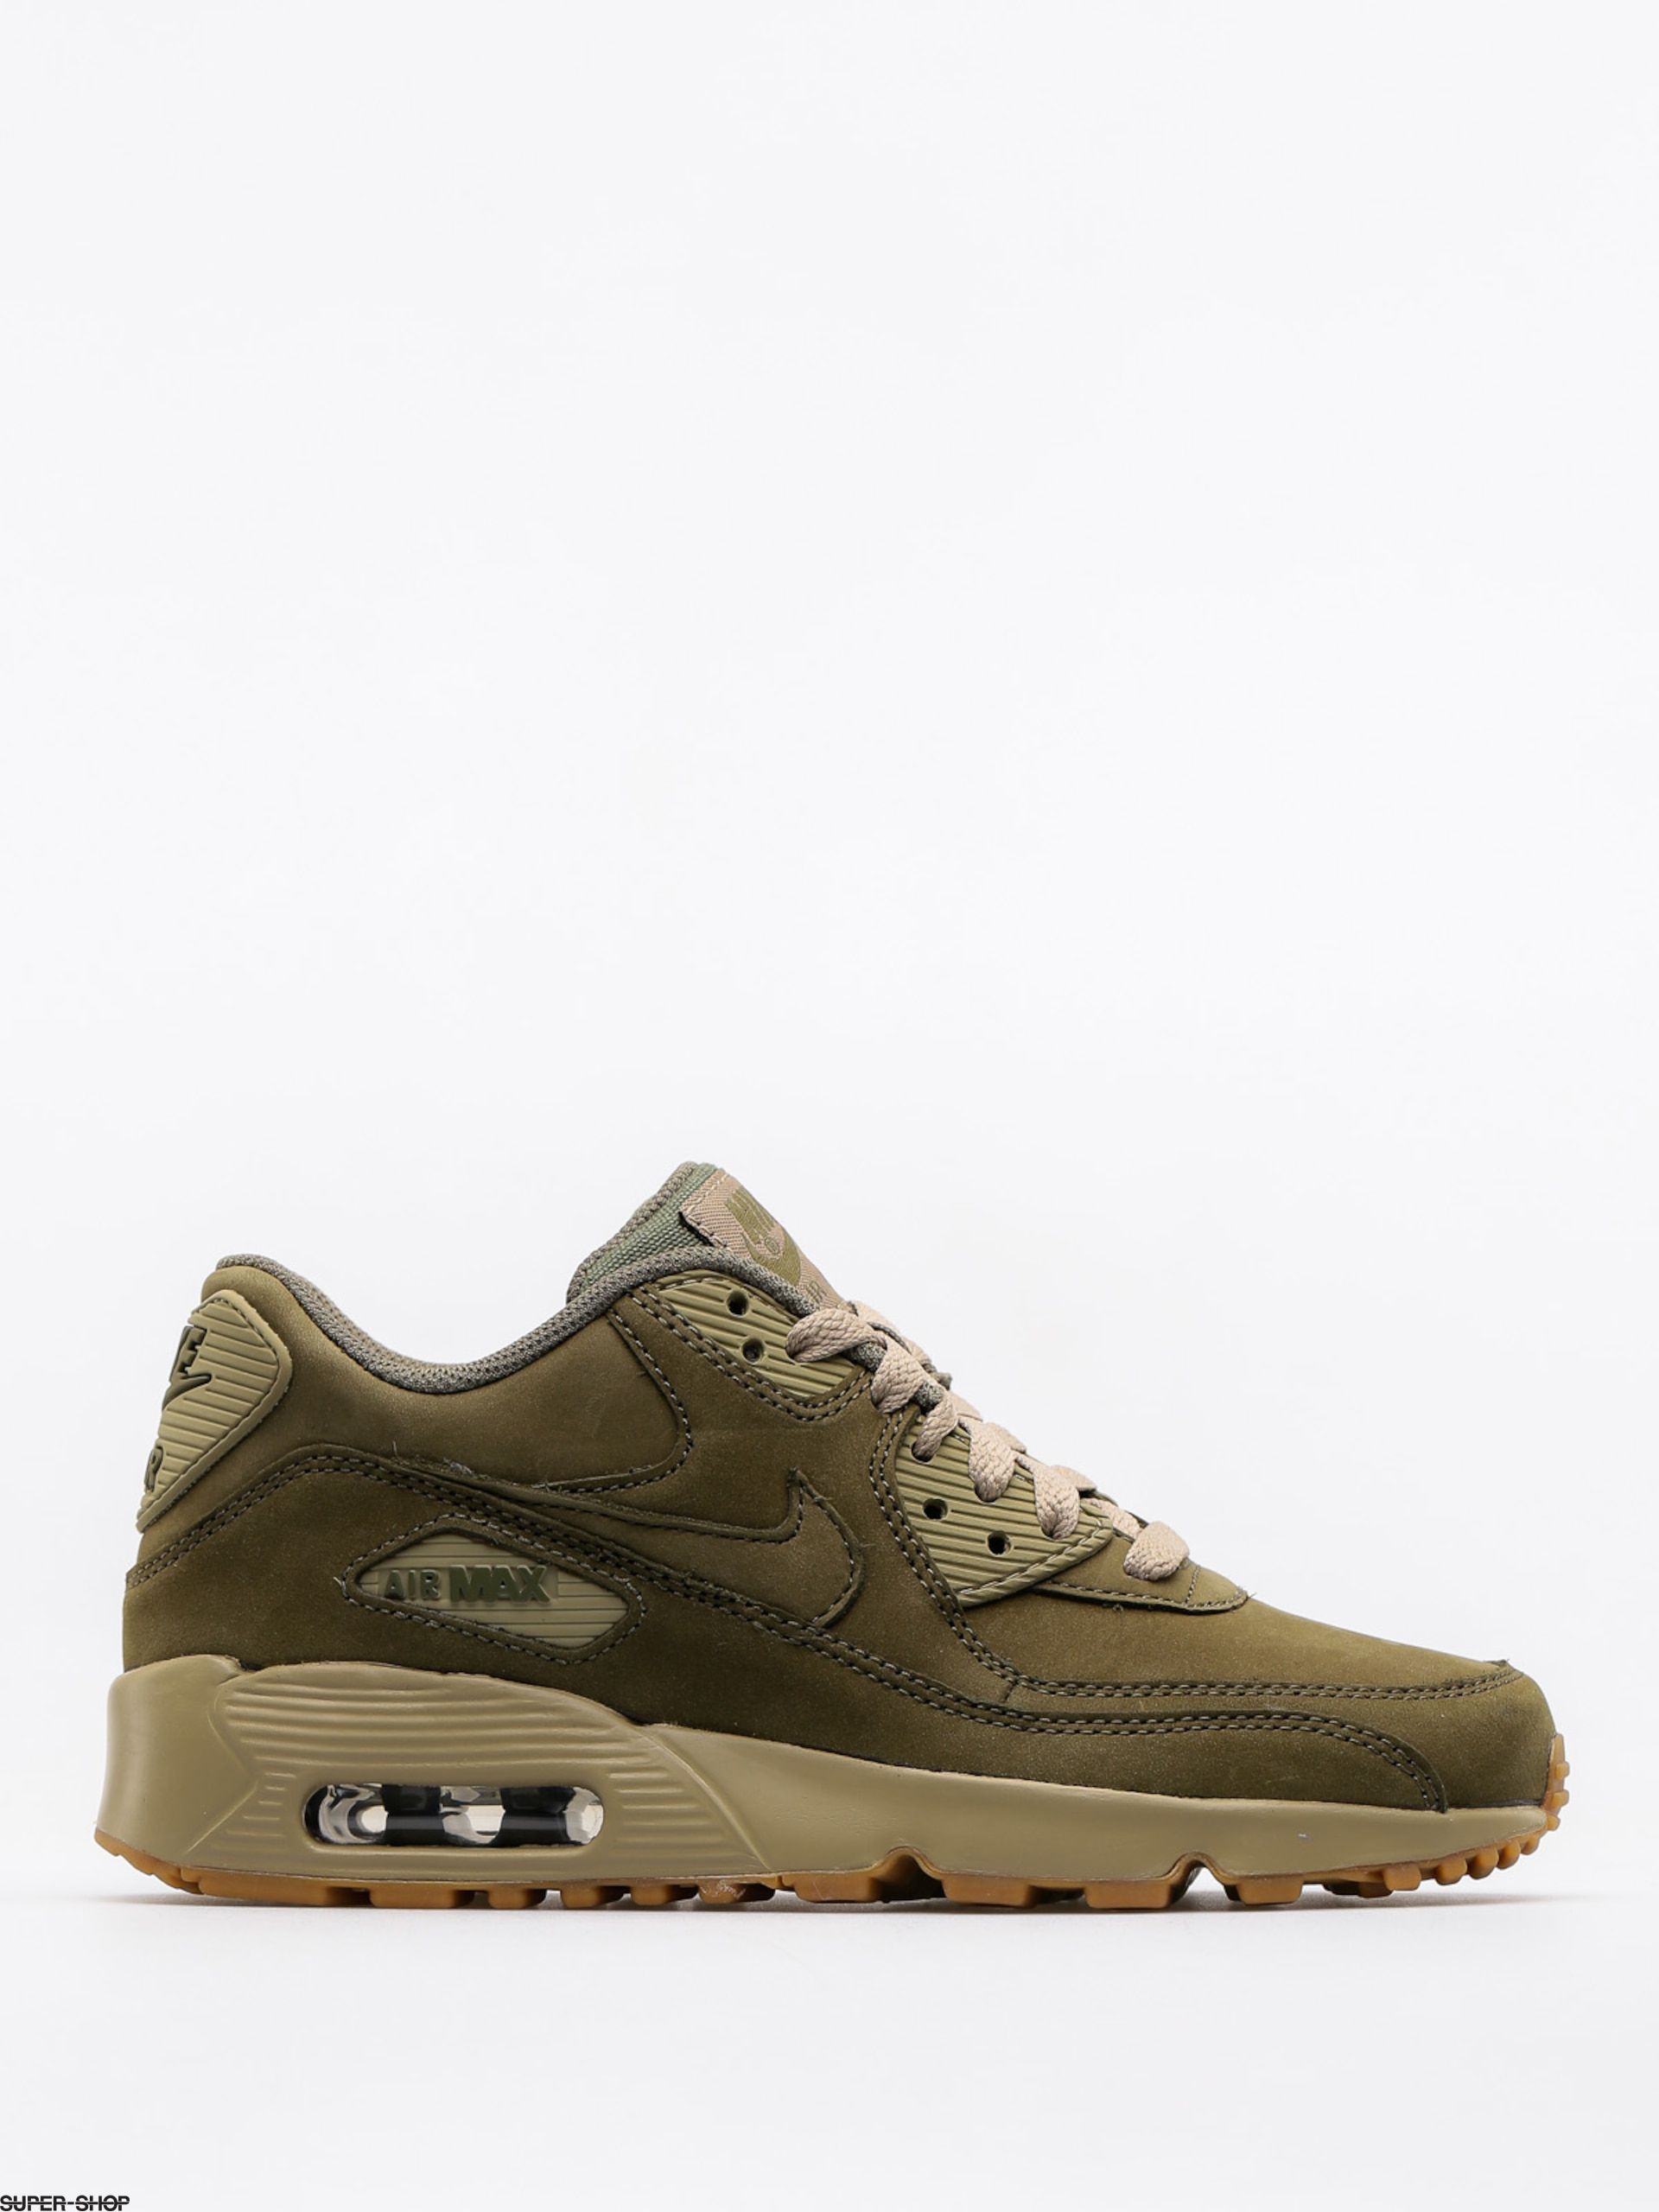 Nike Shoes Air Max 90 Winter Premium Gs (medium olive/medium olive bamboo)